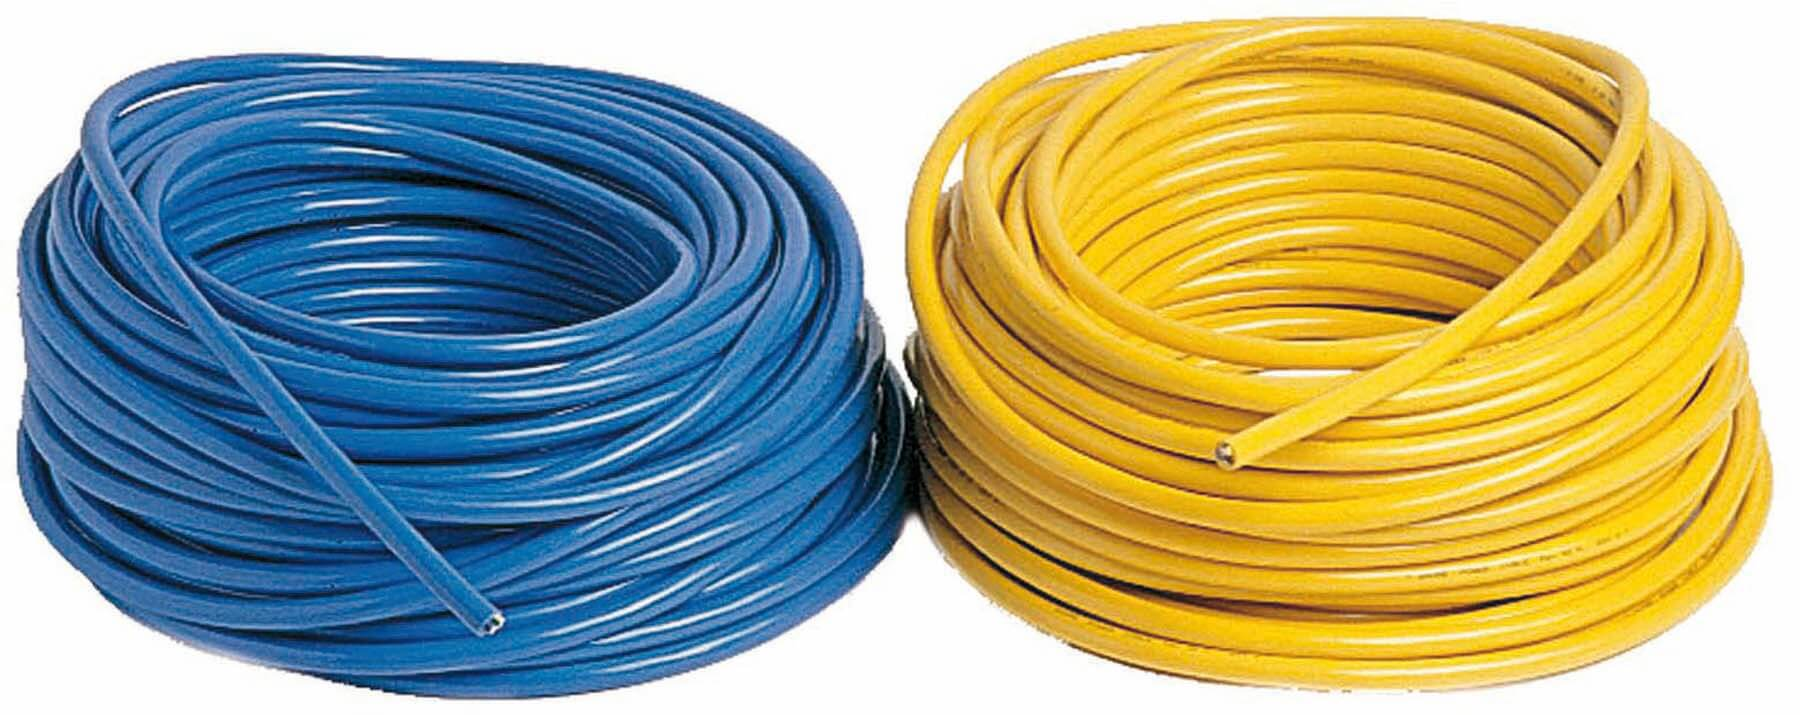 CABLE DIAM 19 AMARILLO (50mts)